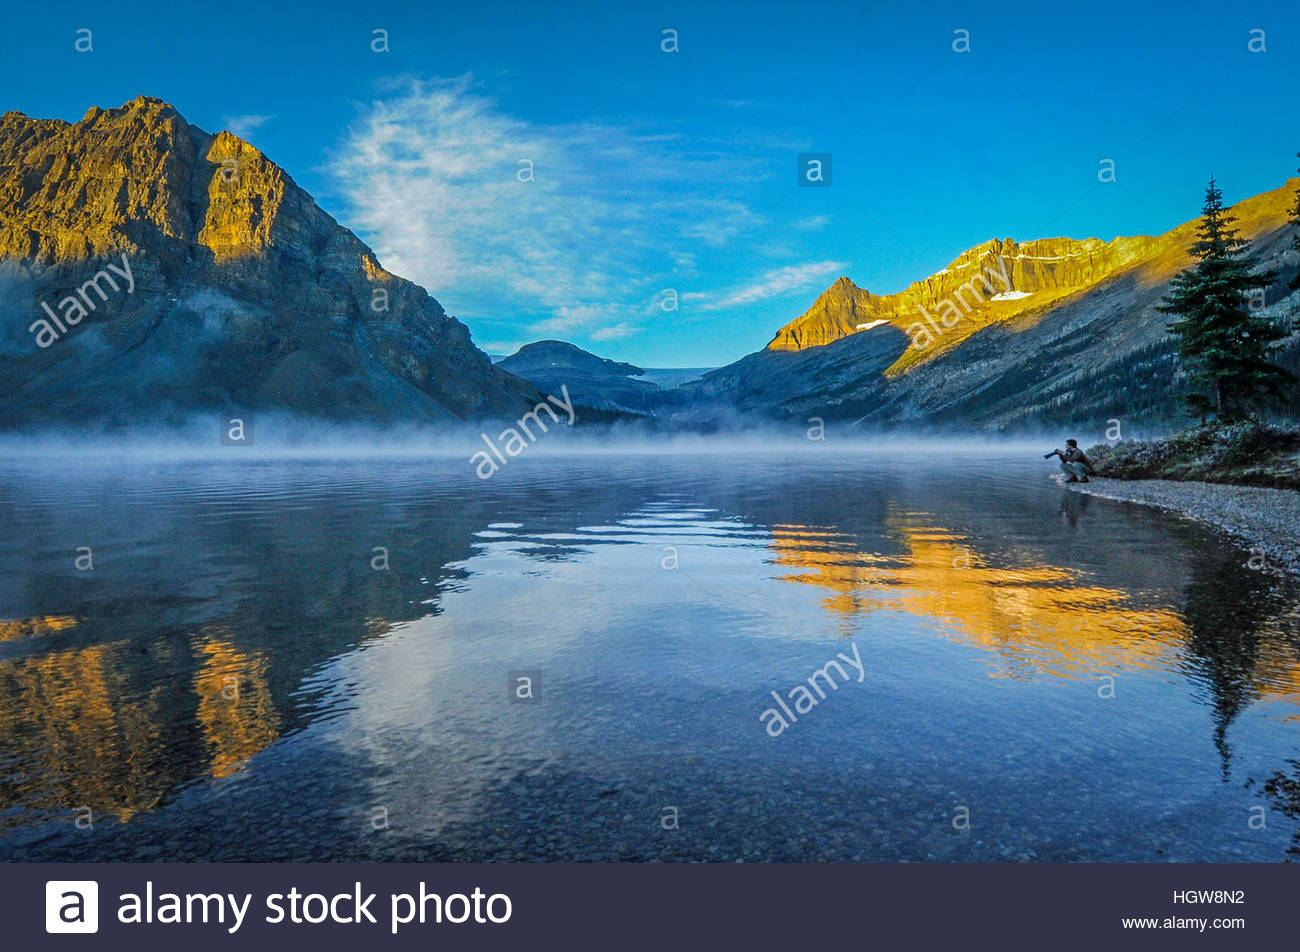 A photographer admires reflections of Crowfoot Mountain and Mount Thompson in Bow Lake. - Stock Image